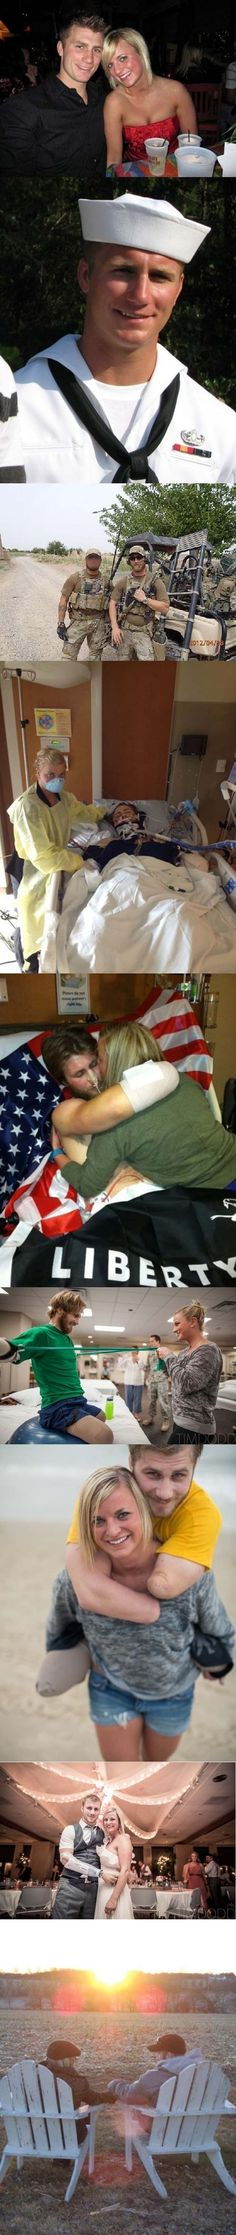 25 Pictures That Will Make You Believe In True Love.  If this doesn't bring a tear to your eye, you're not human...